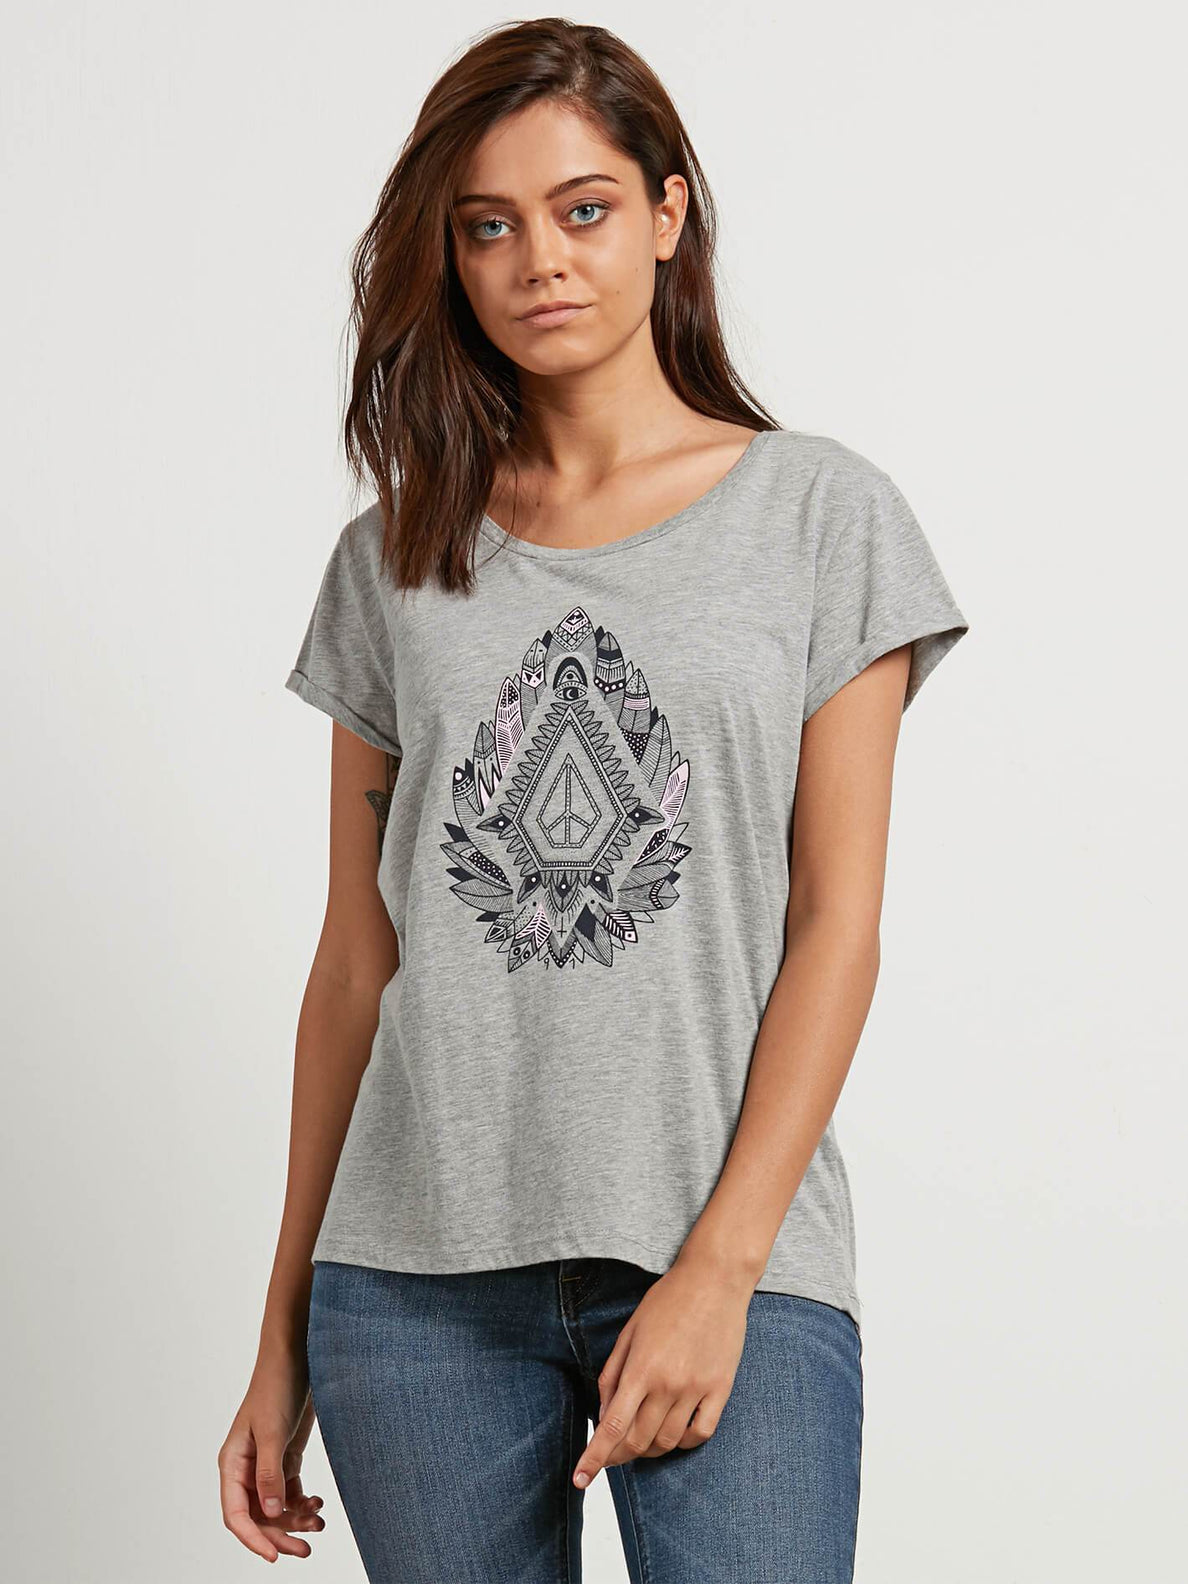 Radical Daze T-shirt - Heather Grey